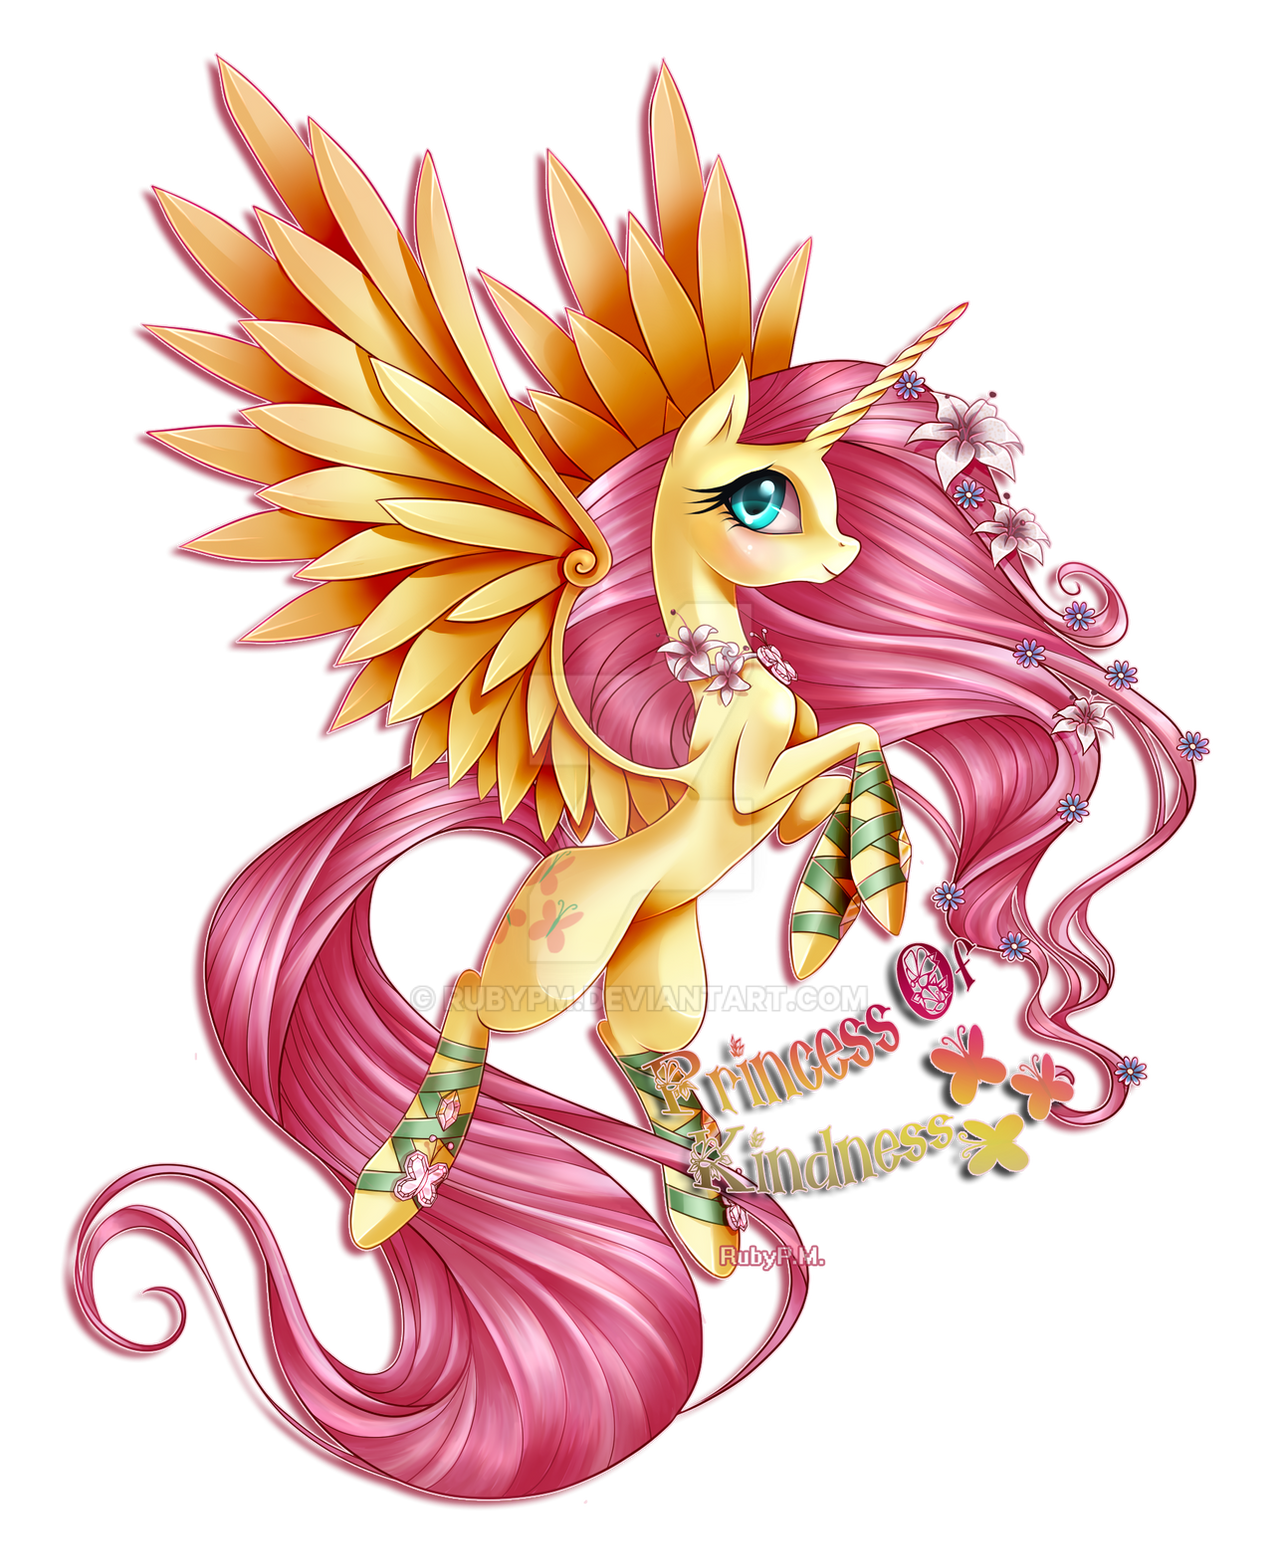 Princess Of Kindness by RubyPM